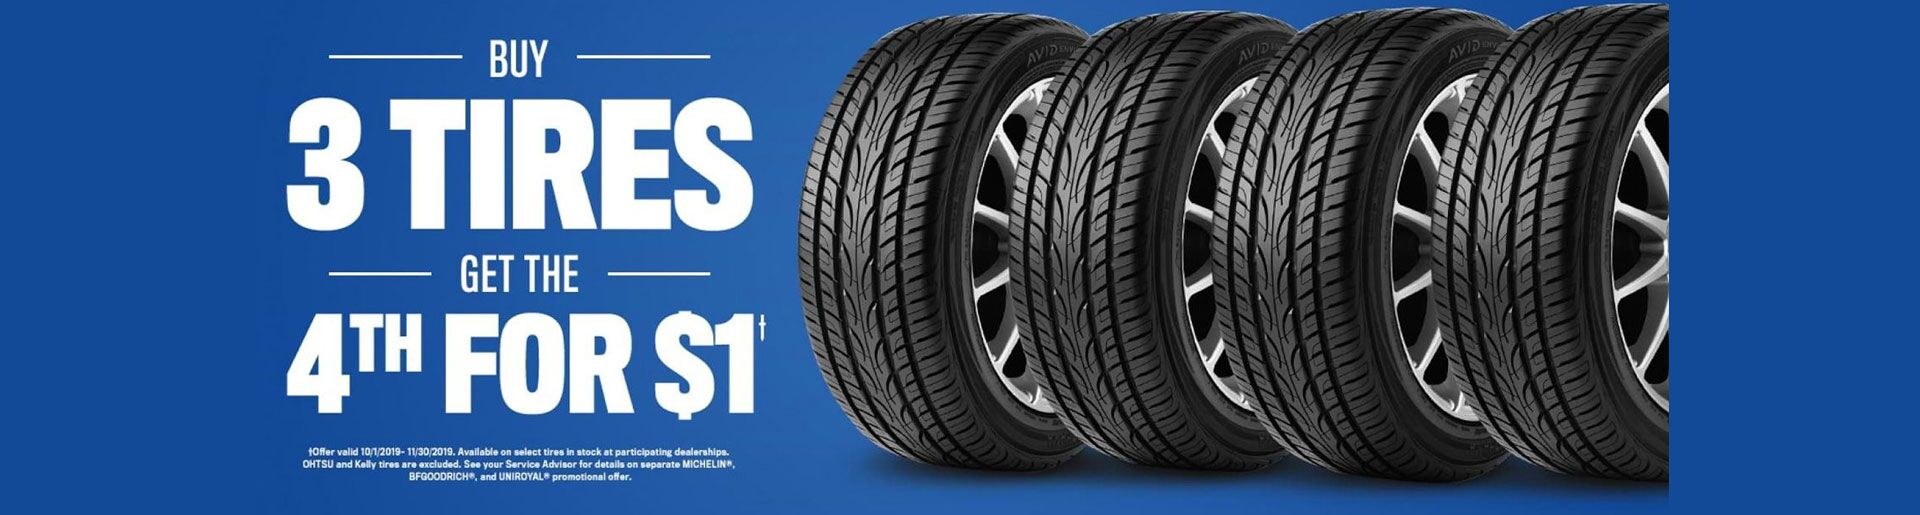 Buy 3 Tires, Get The 4th For Free